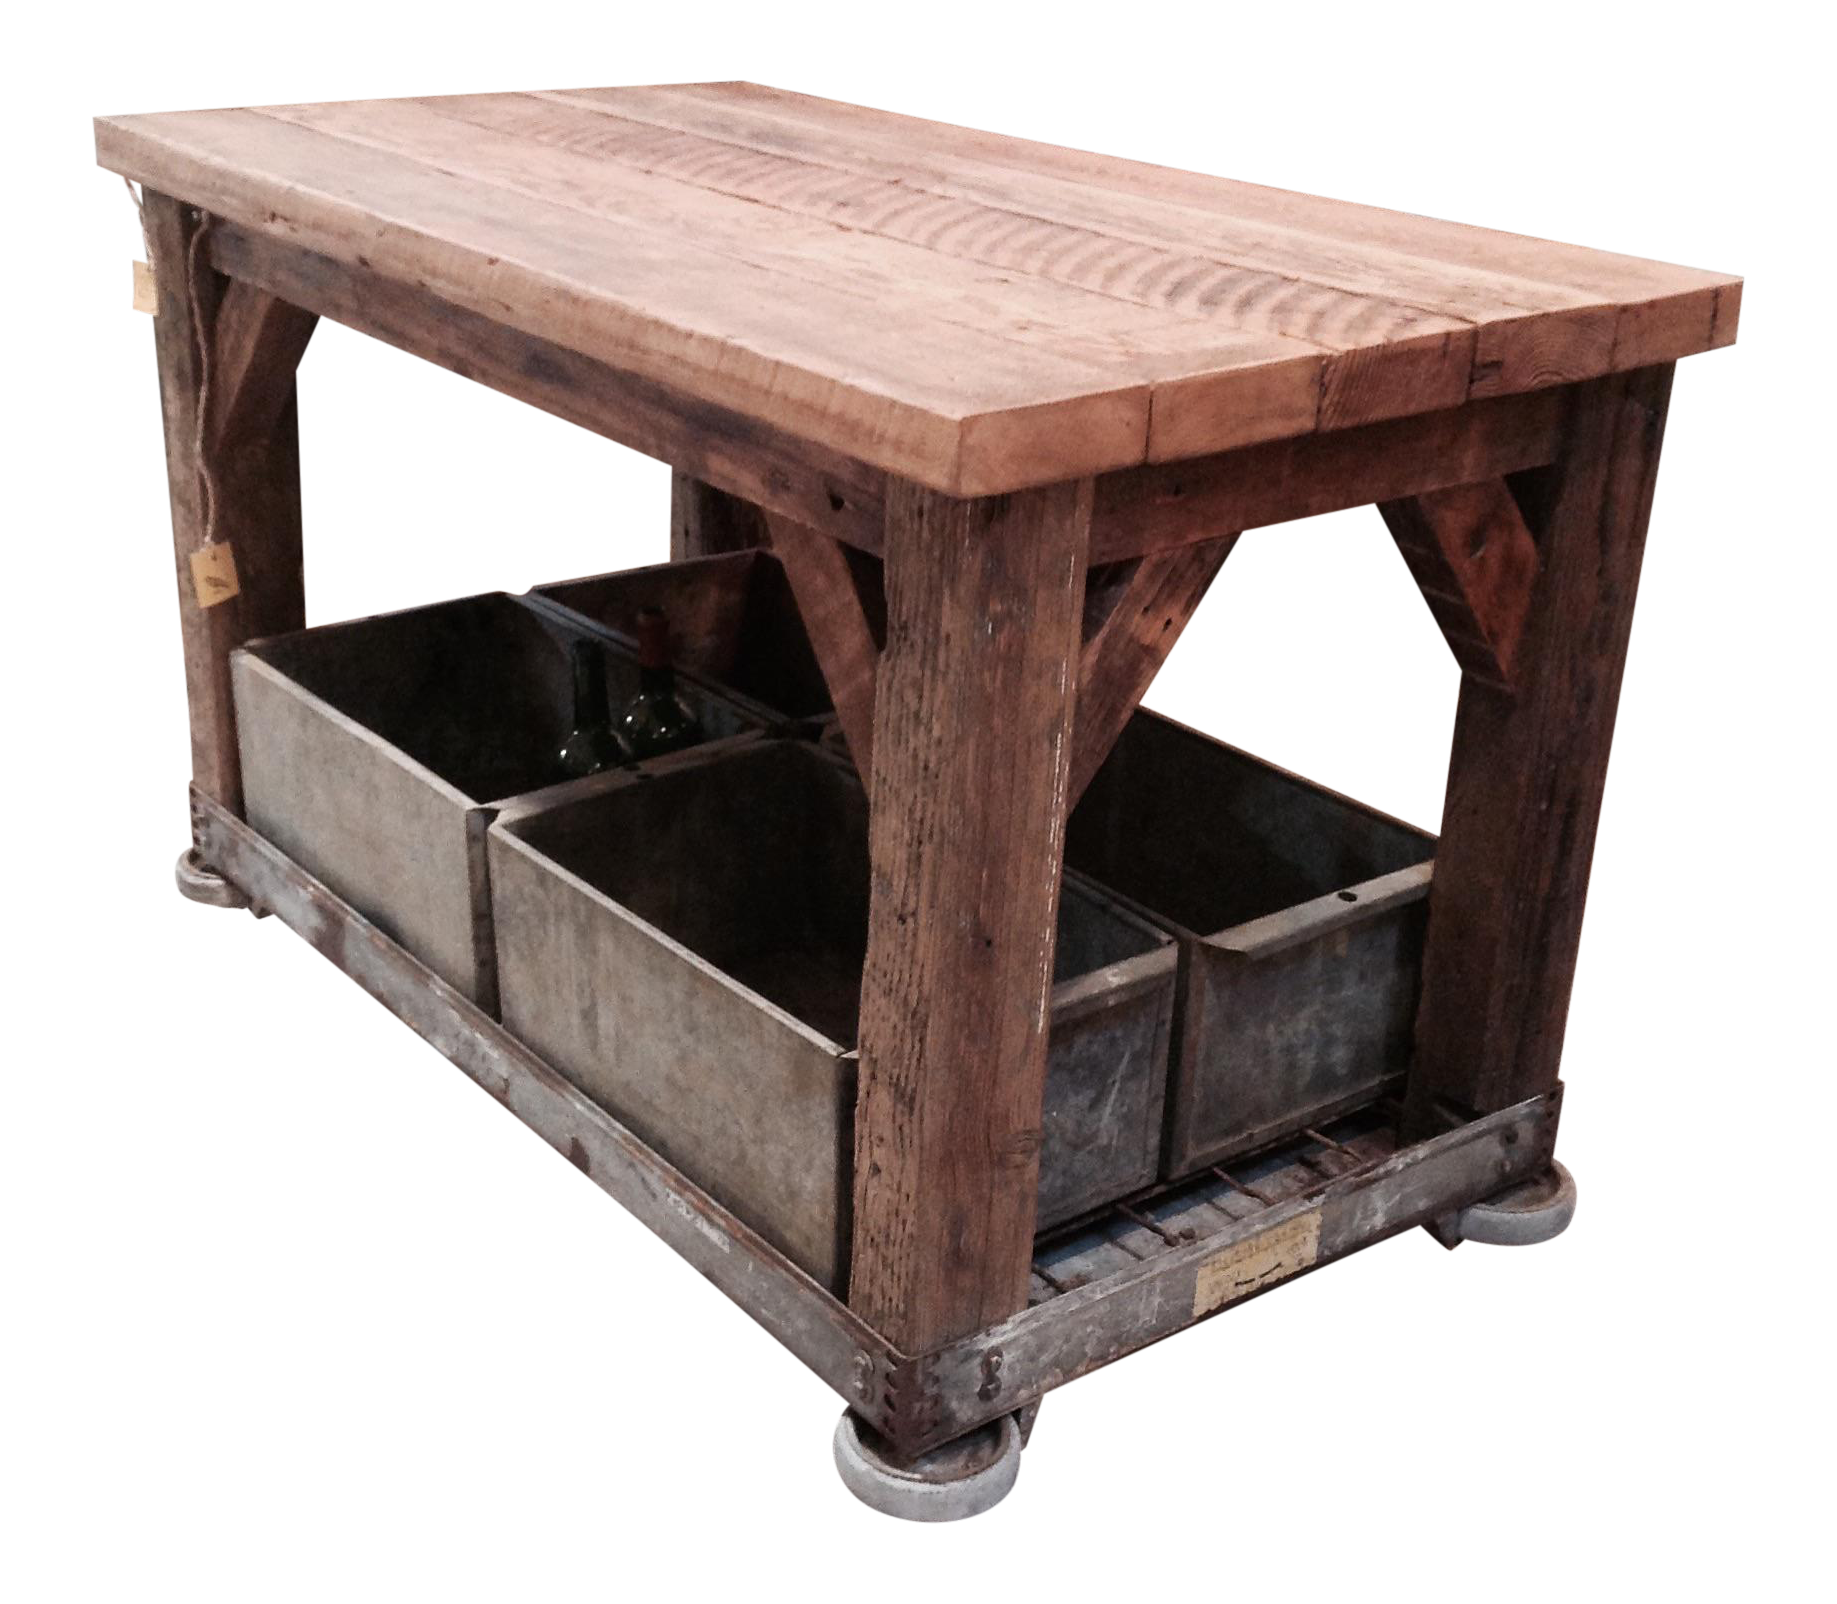 Rolling Coffee Table With Storage: Rolling Industrial Table With Storage Bins